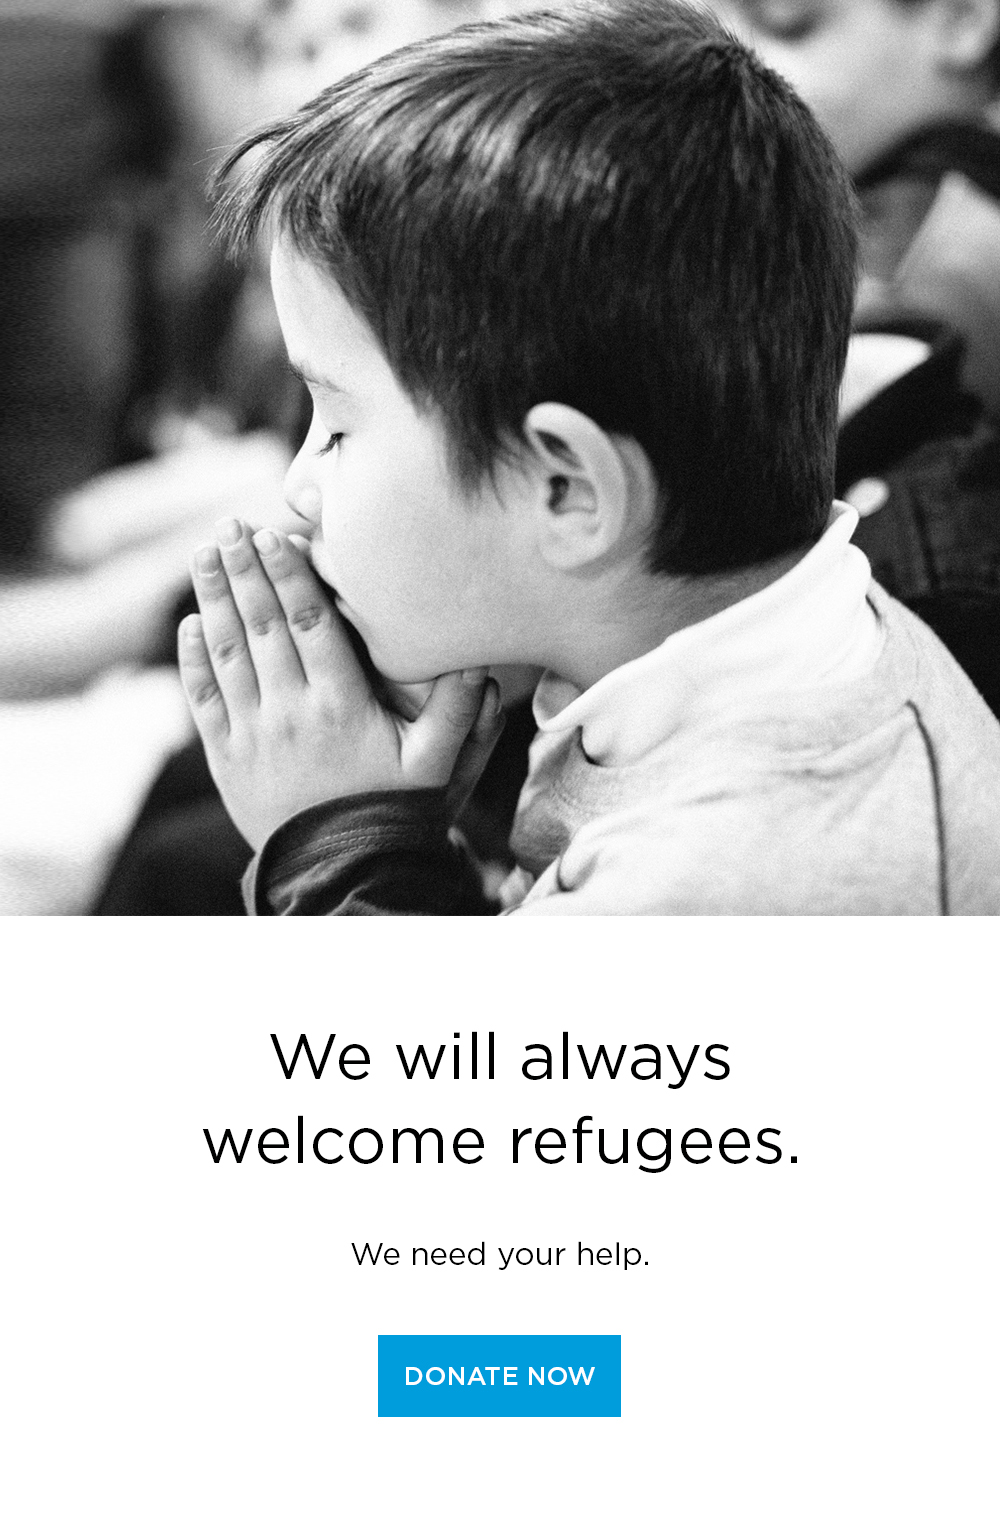 the church will always welcome refugees